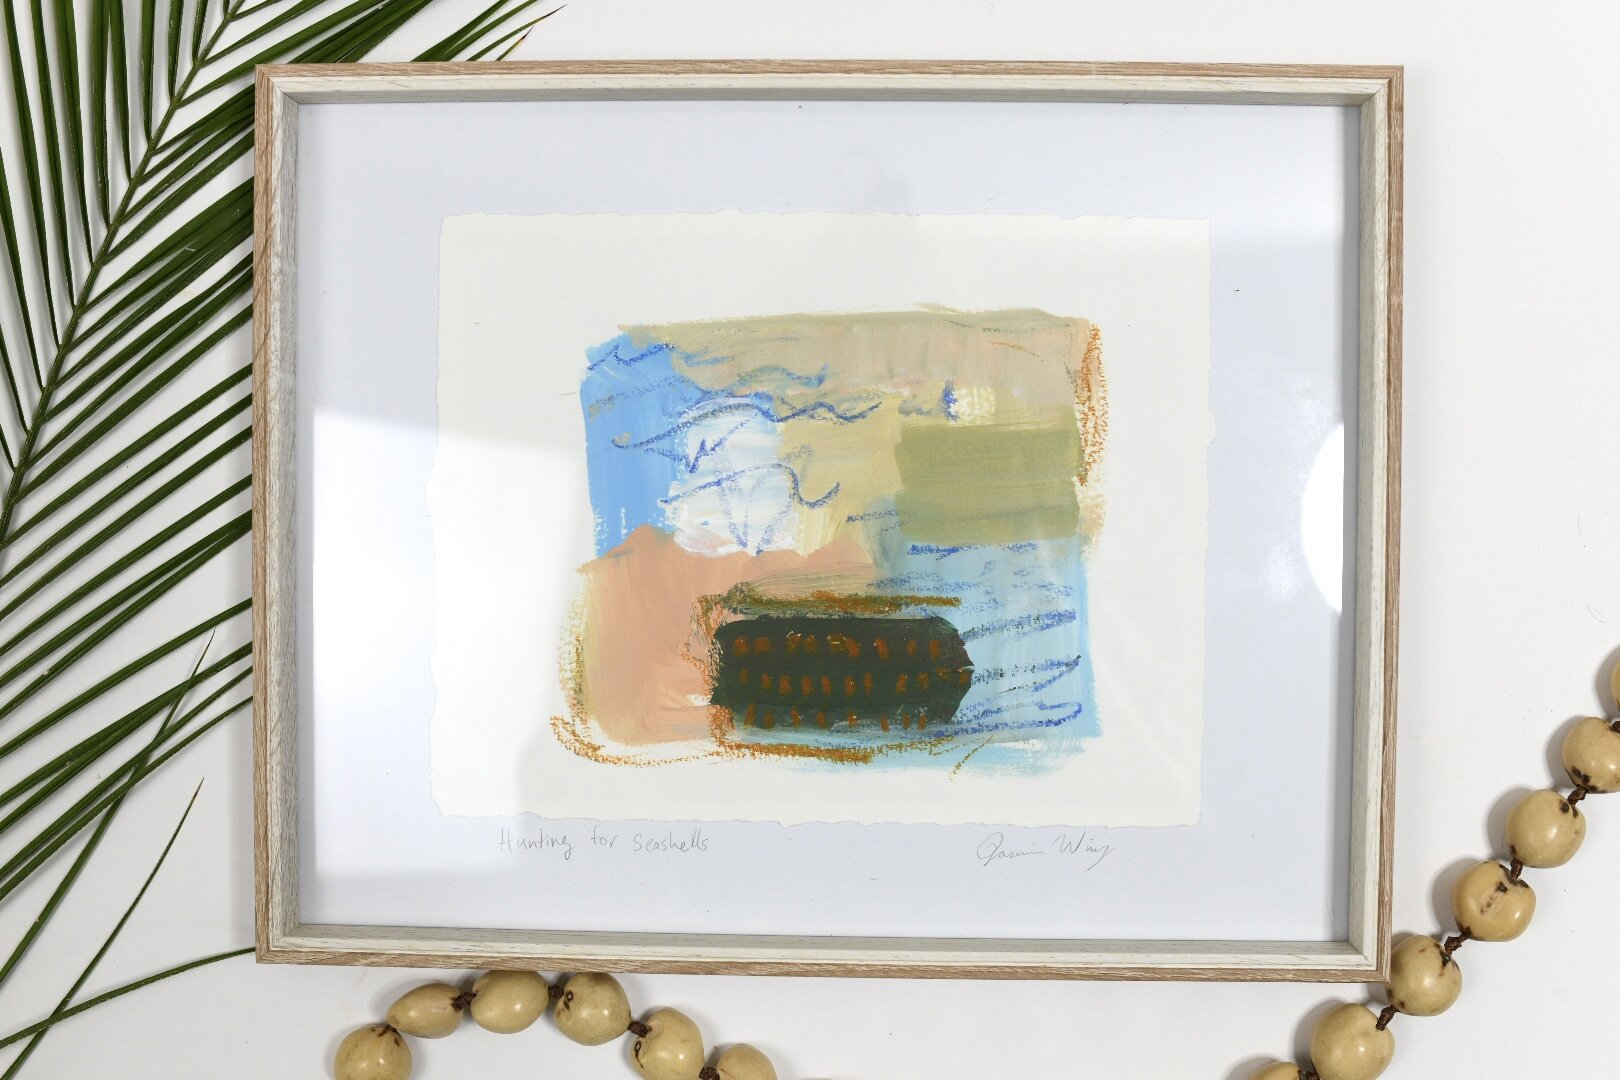 HUNTING FOR SEASHELLS (SOLD OUT)